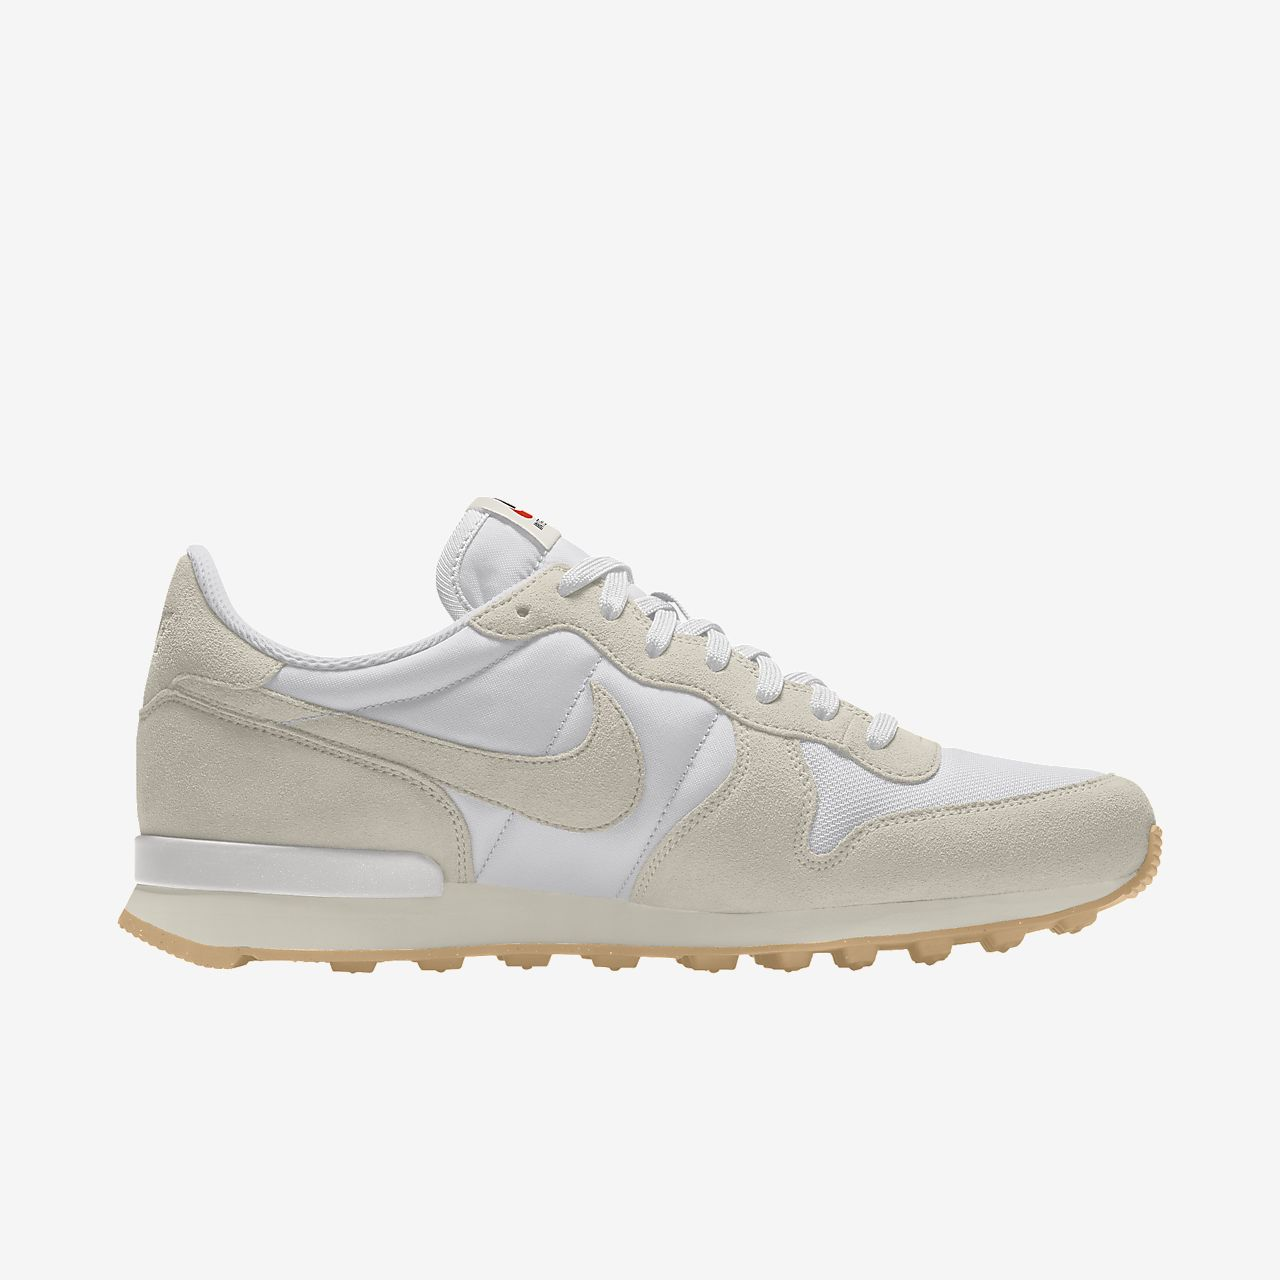 Chaussure personnalisable Nike Internationalist By You pour Femme